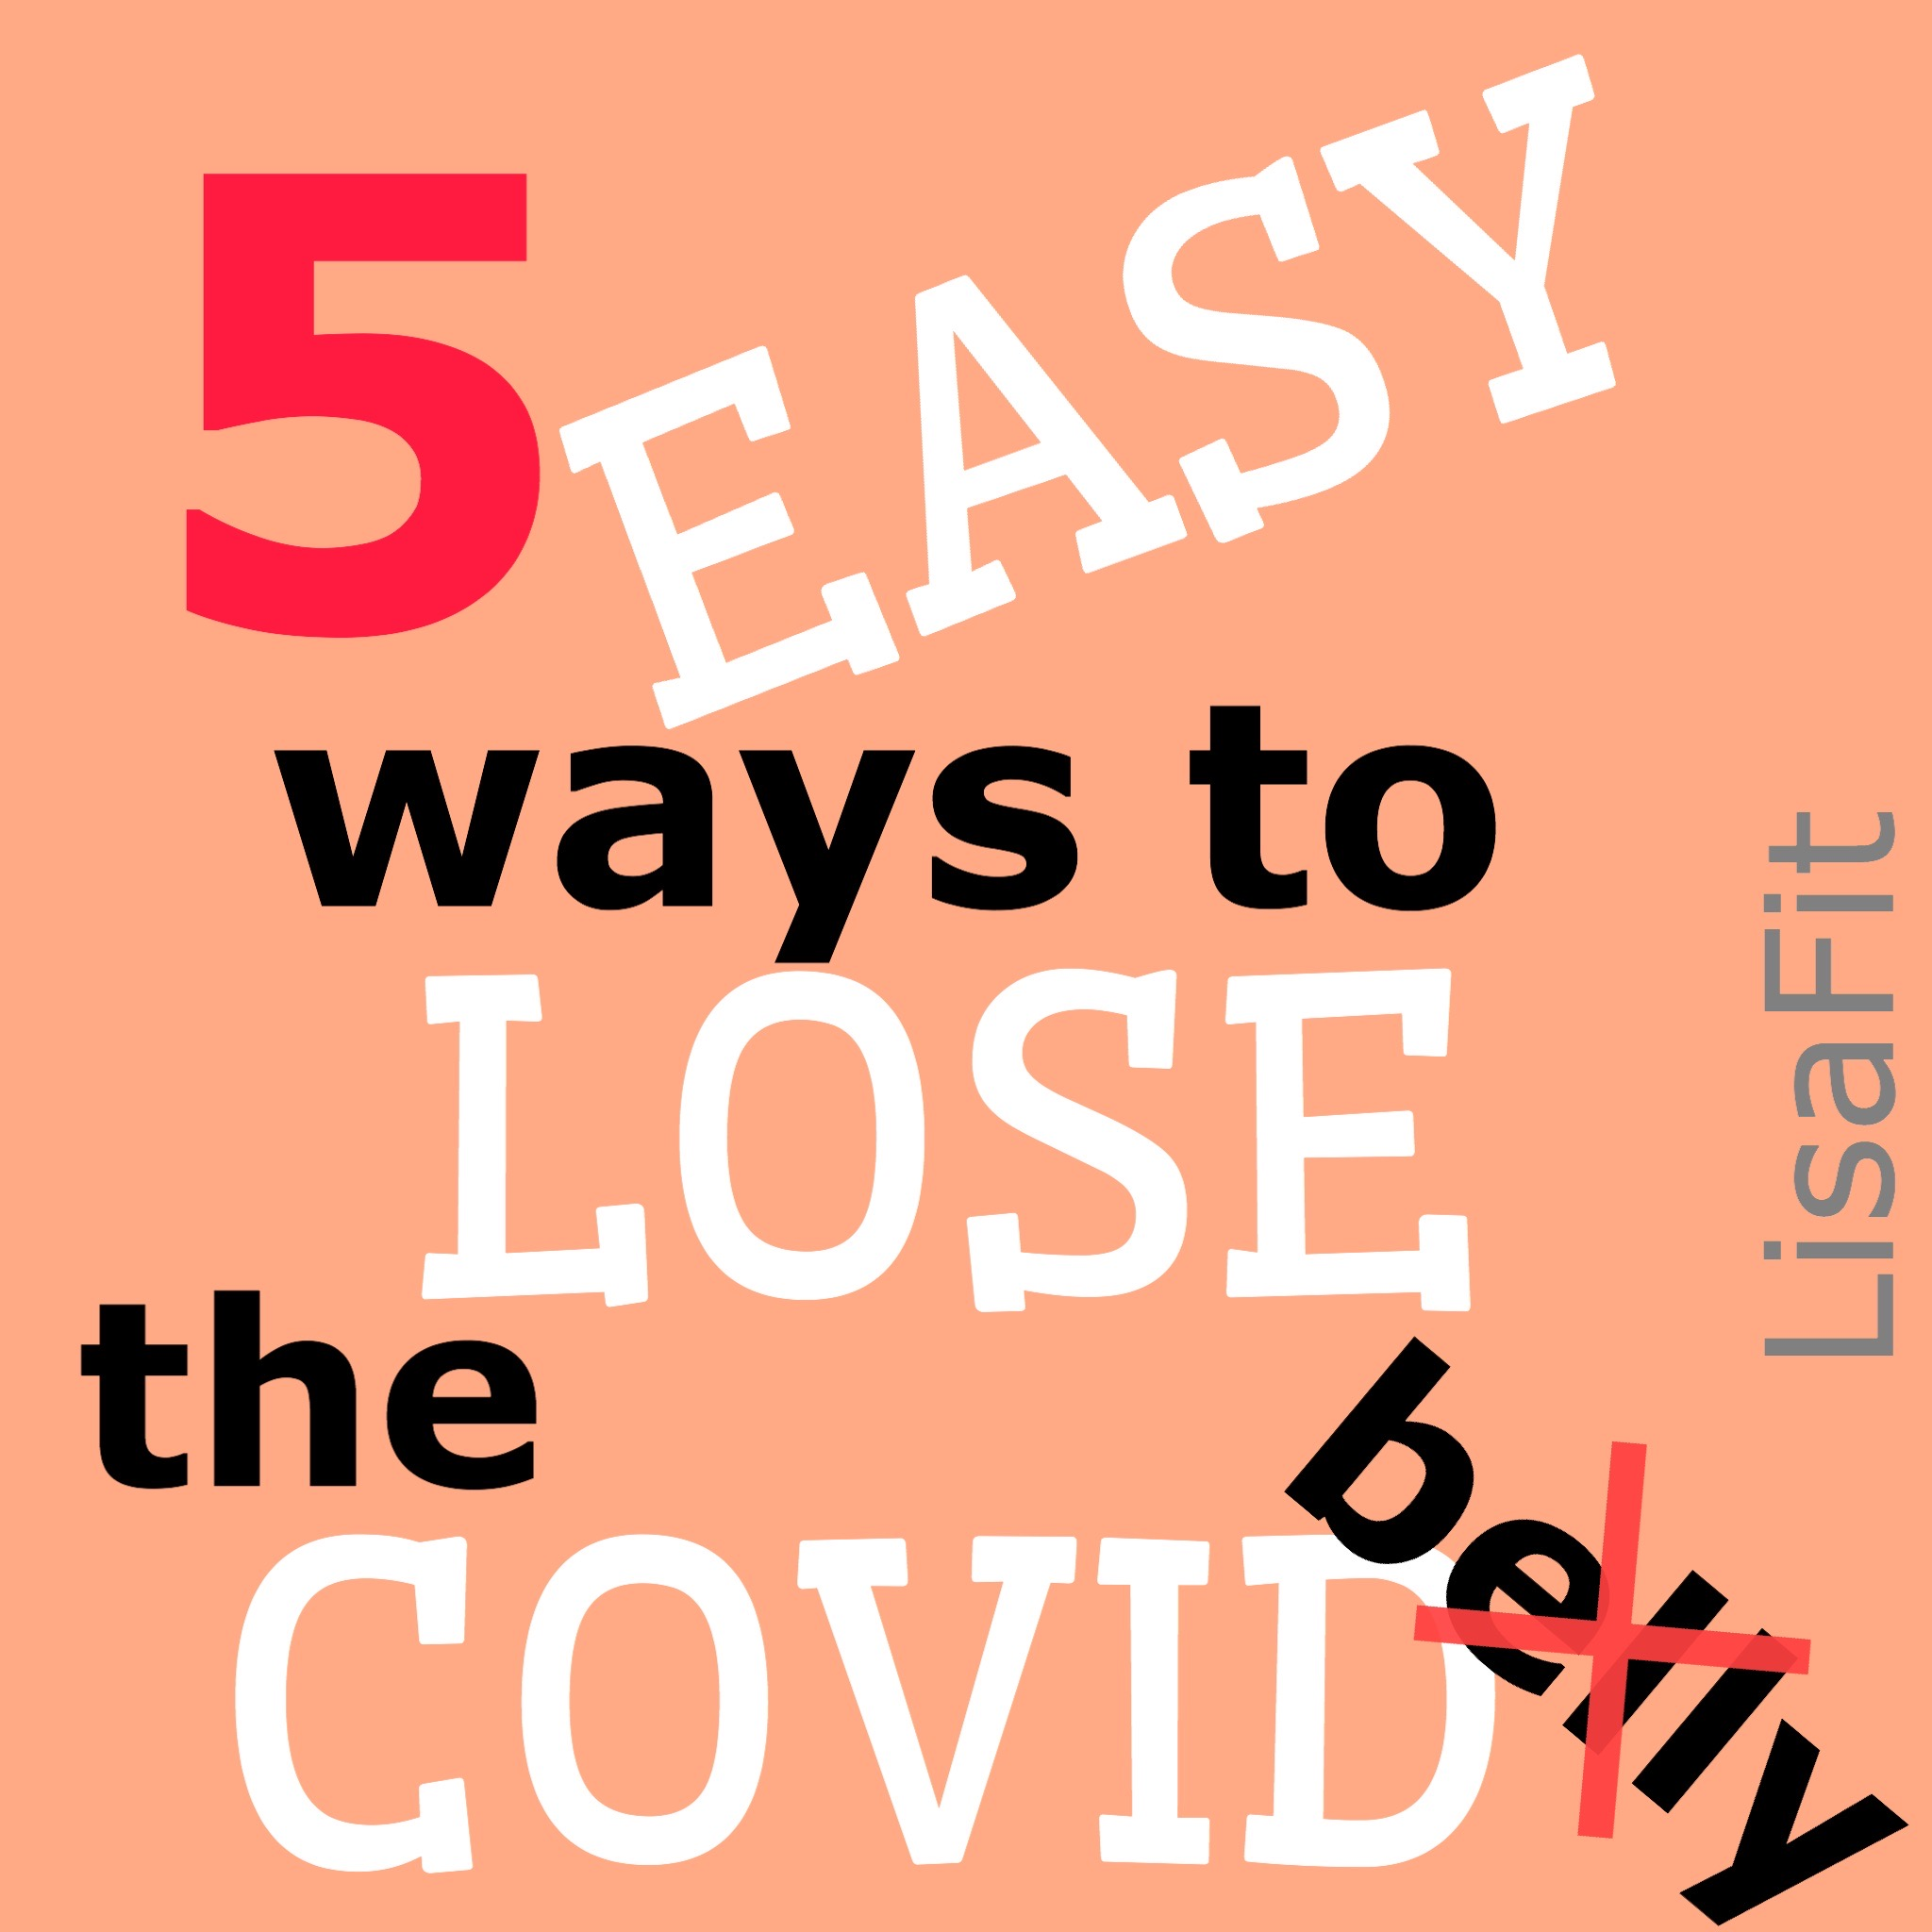 5 easy ways to lose covid belly